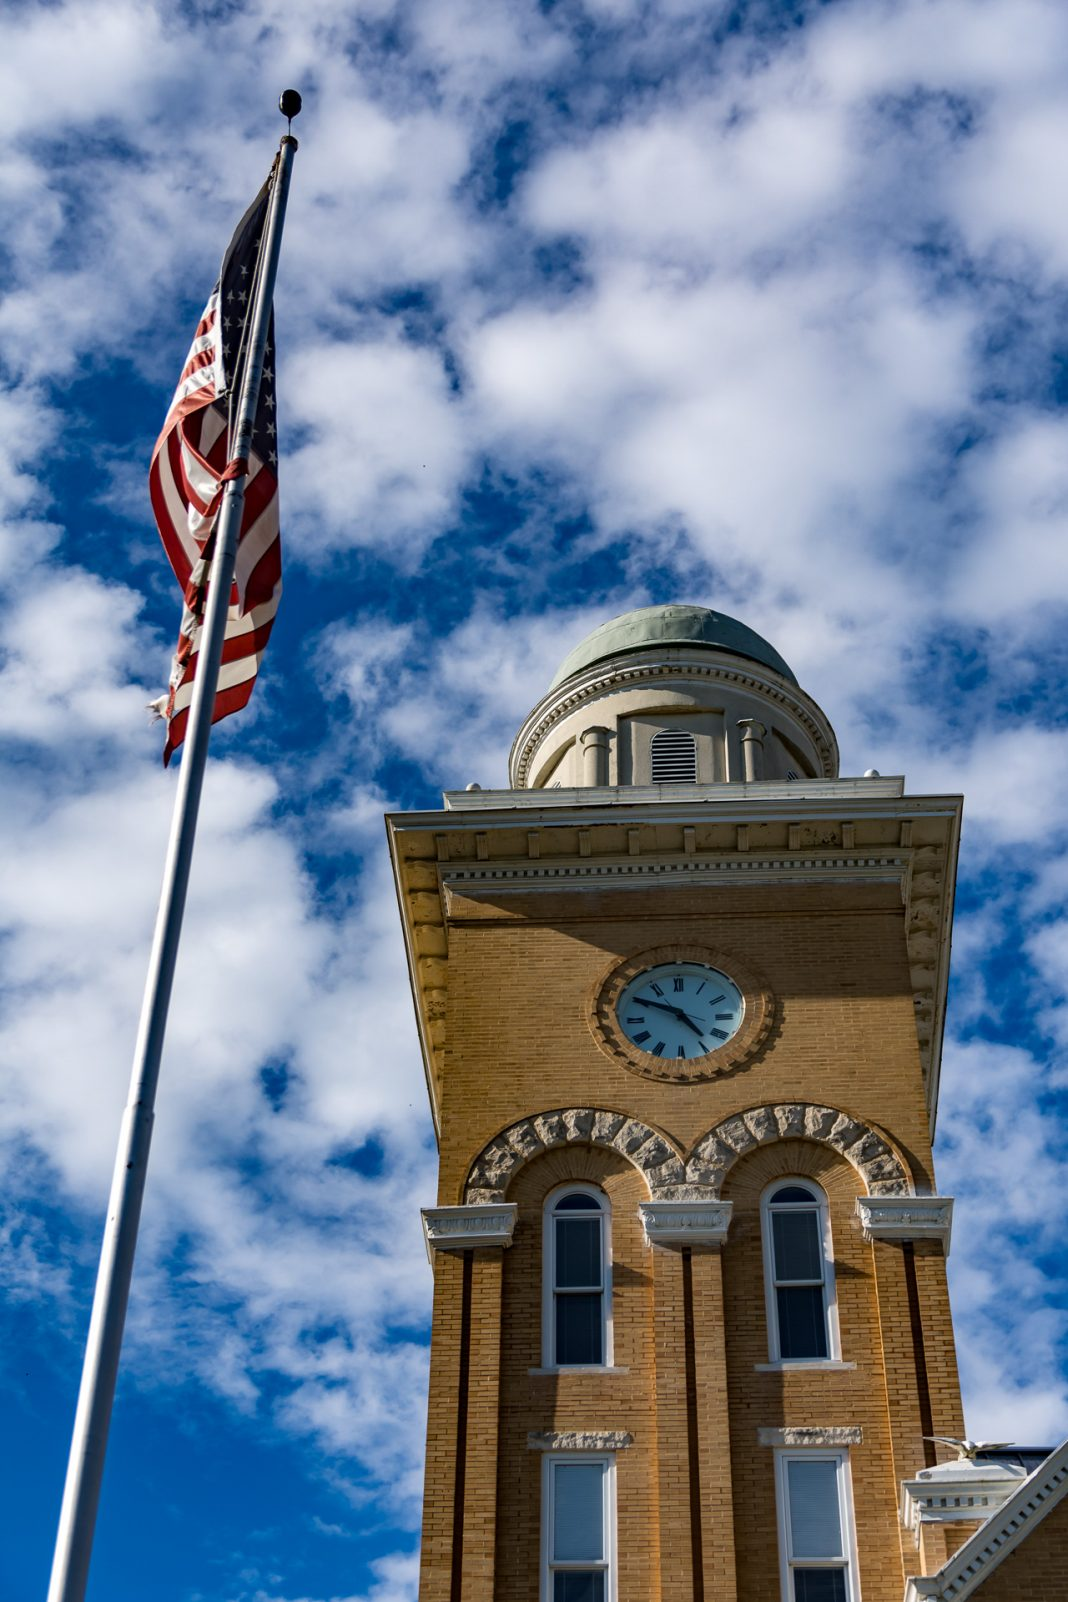 The clock tower of the Bibb County Courthouse.